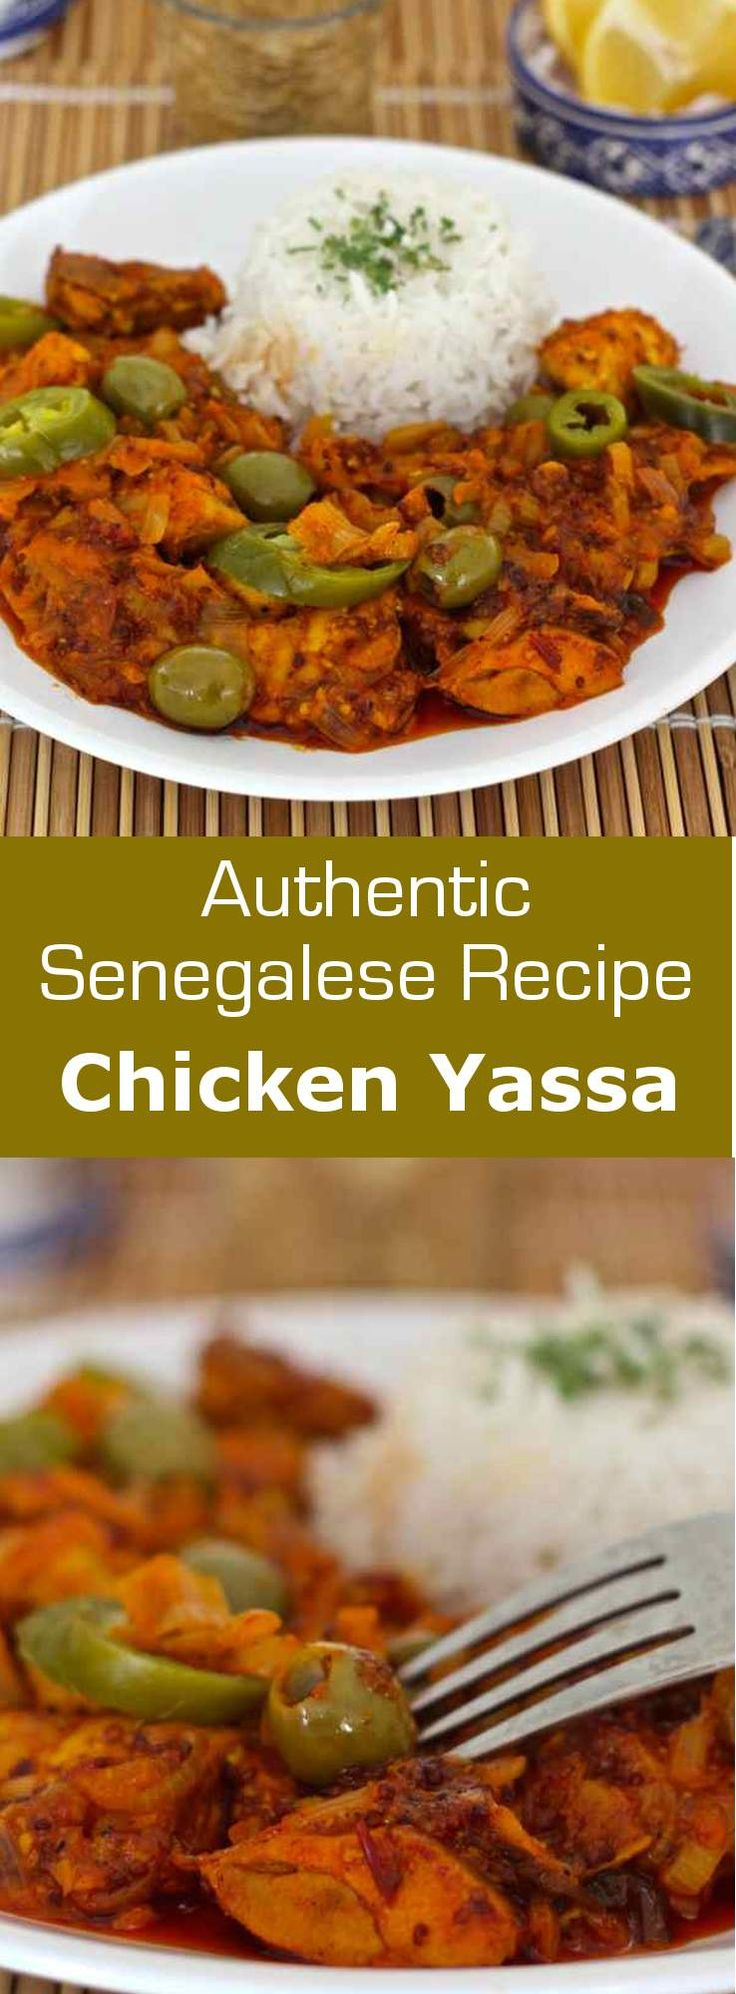 Chicken yassa, one of Senegal's most popular dishes, consists of chicken marinated in onion, lemon and mustard, which is roasted before being cooked. #africa #senegal #196flavors